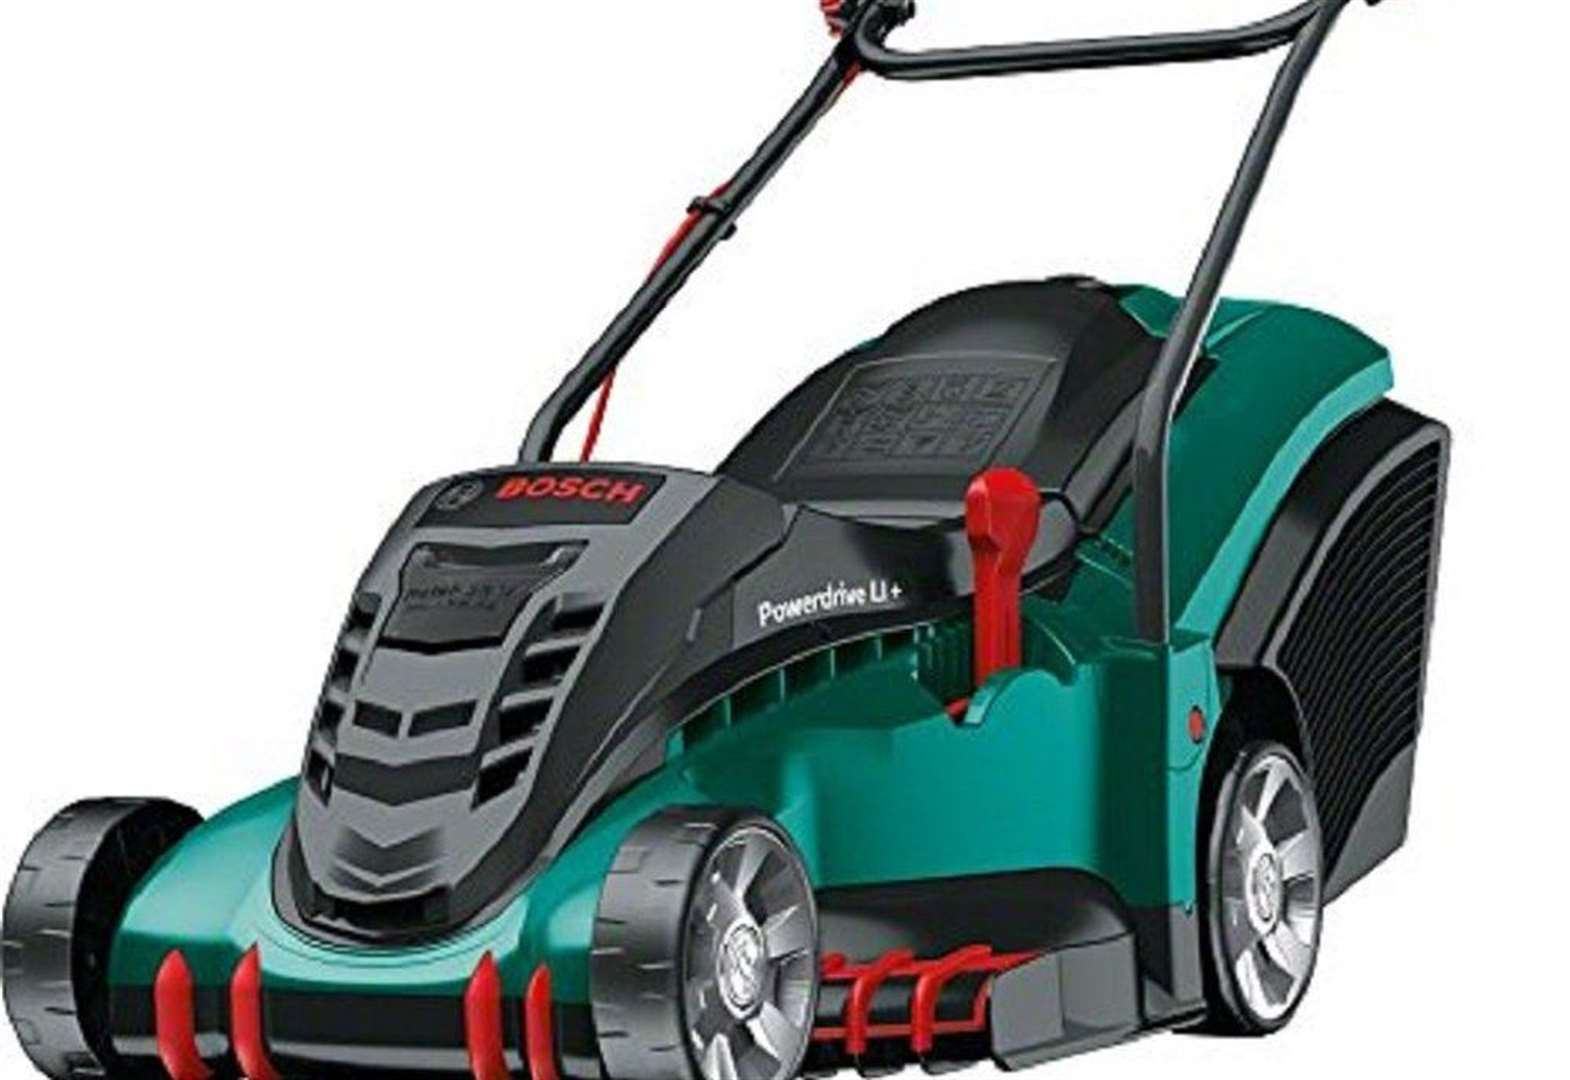 Swaffham man to appear in court for lawnmowers theft